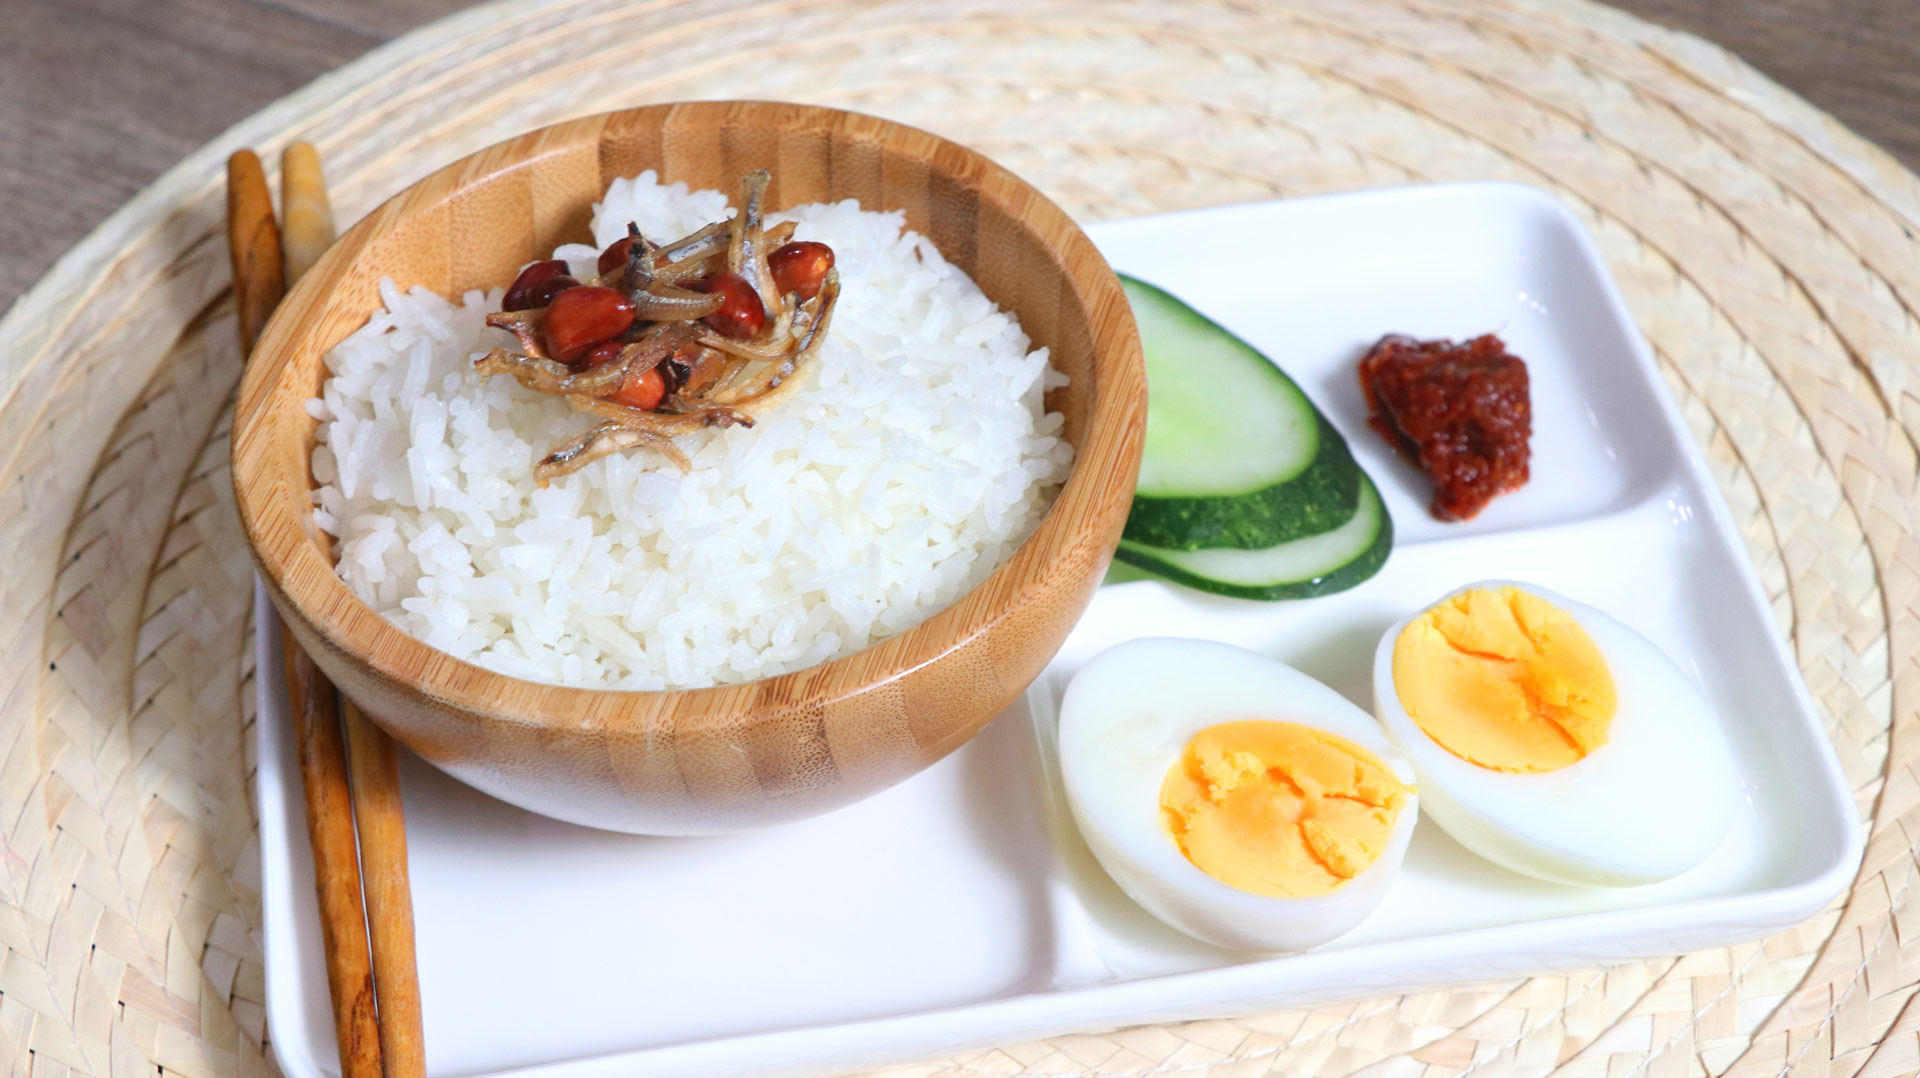 two-bad-chefs-coconut-rice-dish-01.jpg